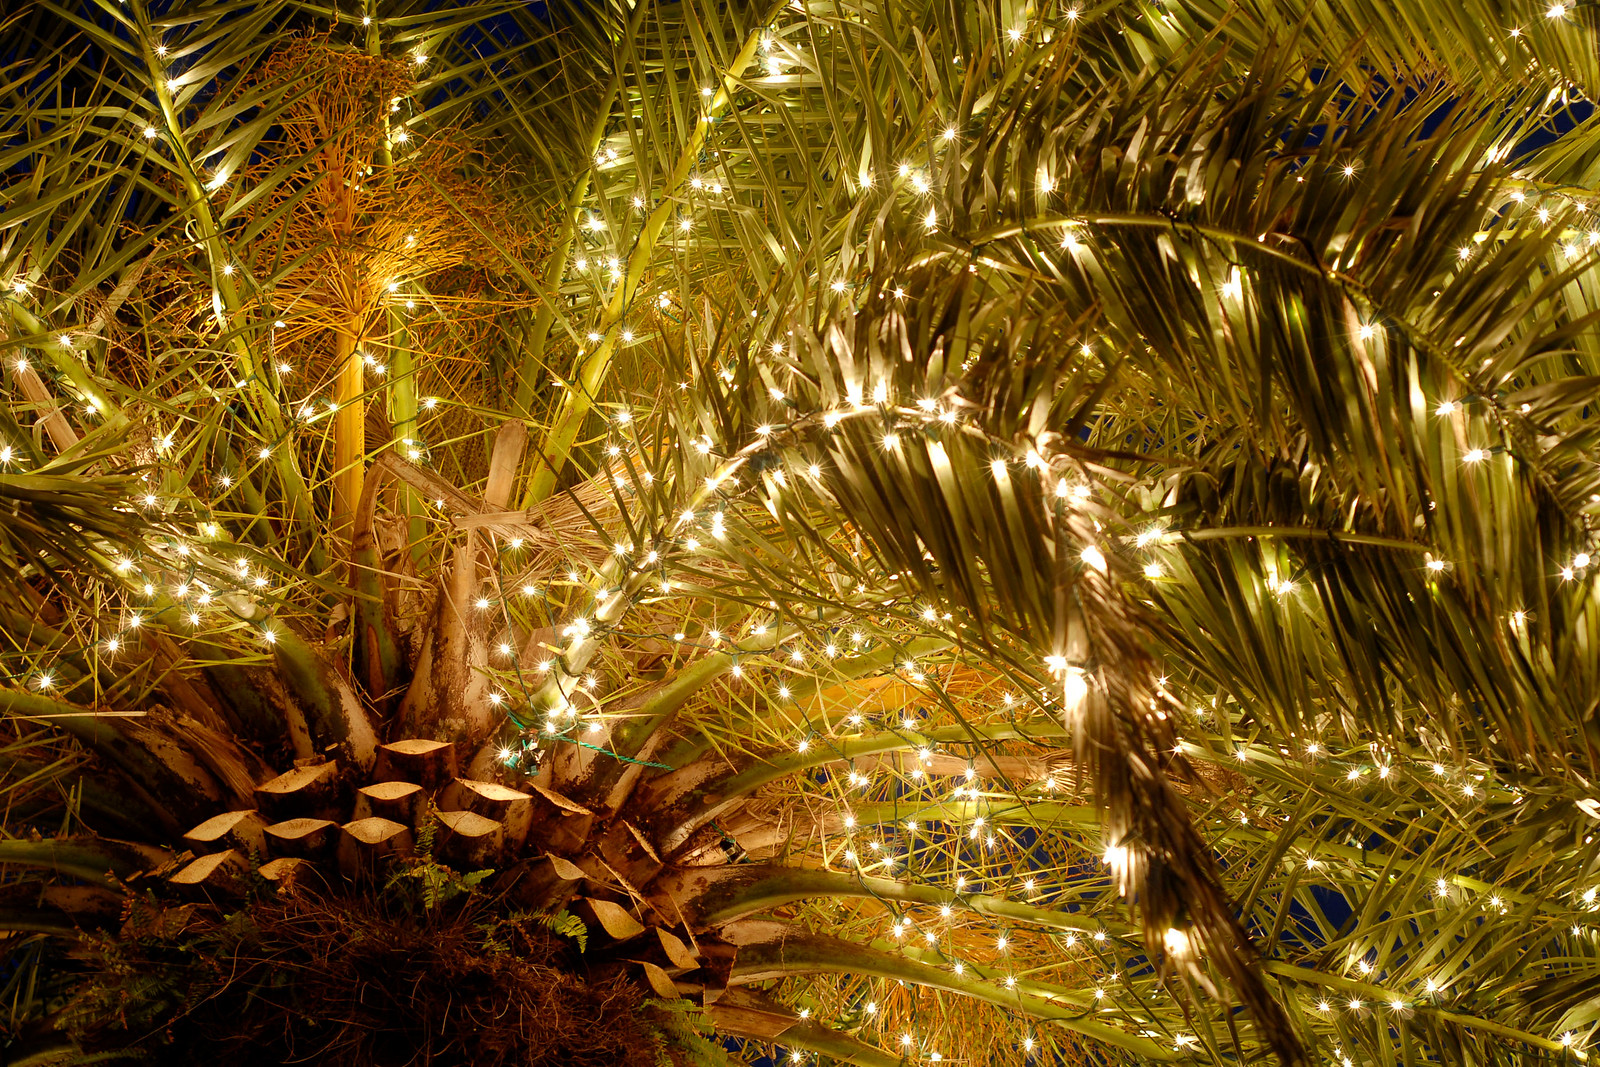 A palm tree is decorated with lights in Marion Square in Downtown Charleston, South Carolina on Friday, December 10, 2010. Photo Copyright 2010 Jason Barnette